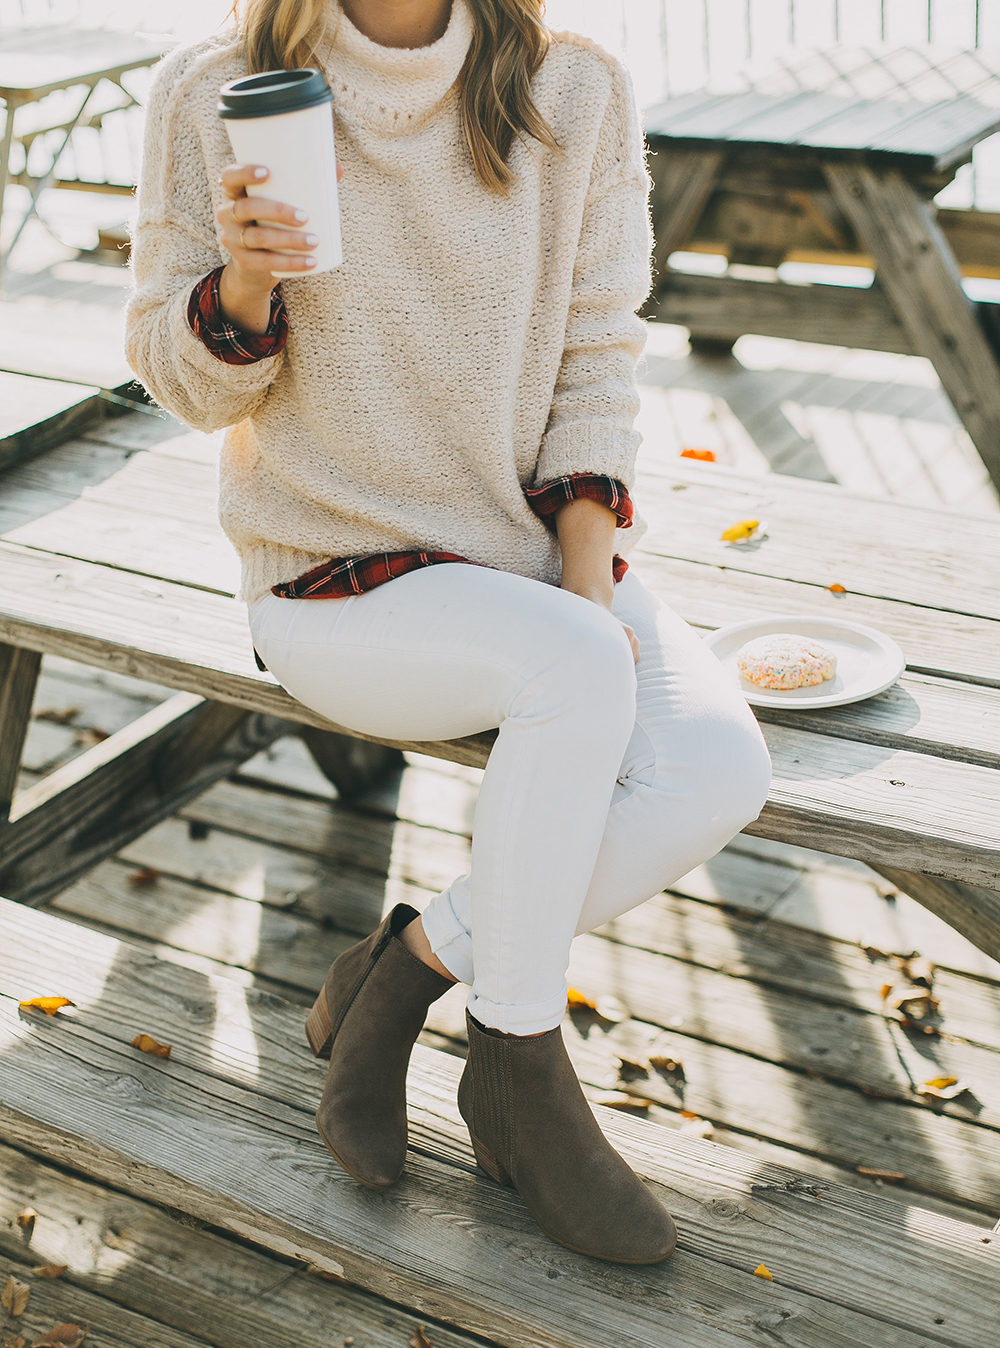 livvyland-blog-olivia-watson-austin-texas-fashion-style-blogger-knit-sweater-plaid-button-down-layer-white-jeans-mozarts-coffeehouse-2